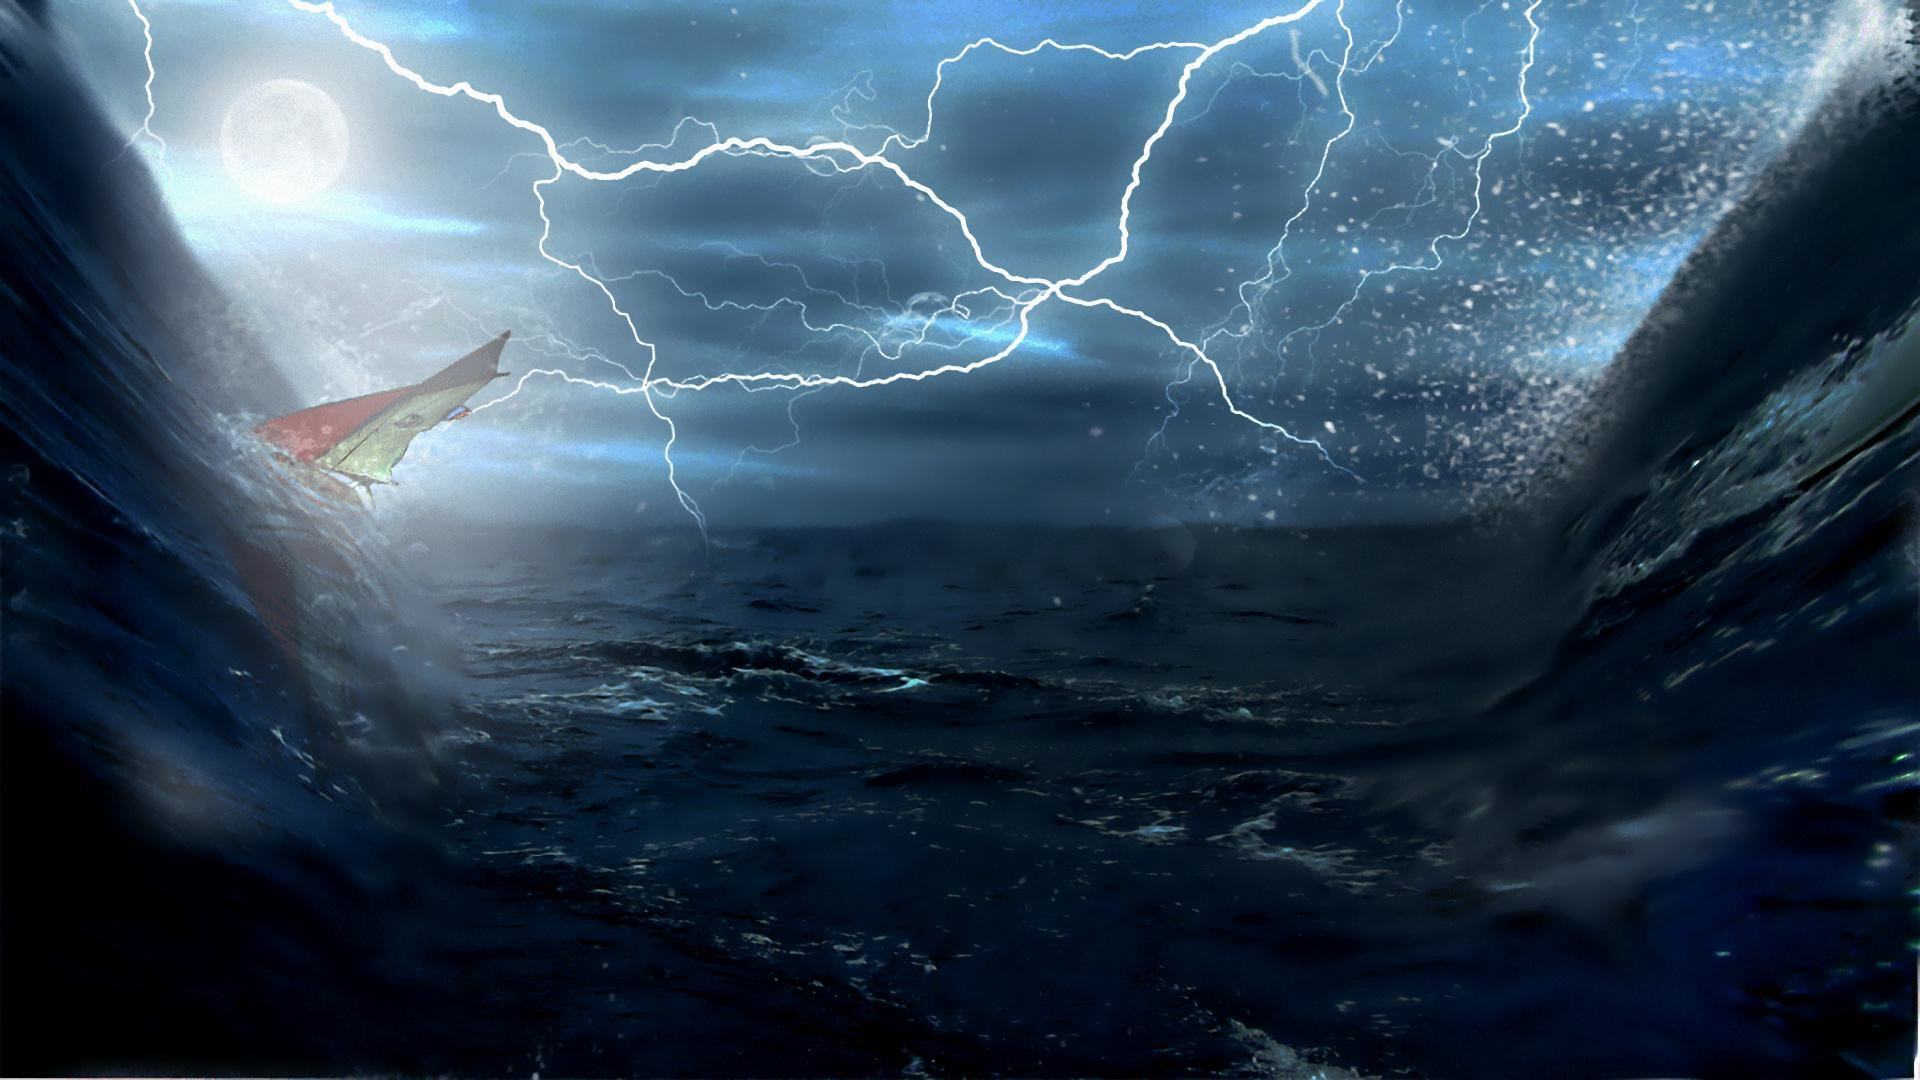 1920x1080 wallpaper.wiki-Lightning-Storm-Ship-Background-PIC-WPD003099